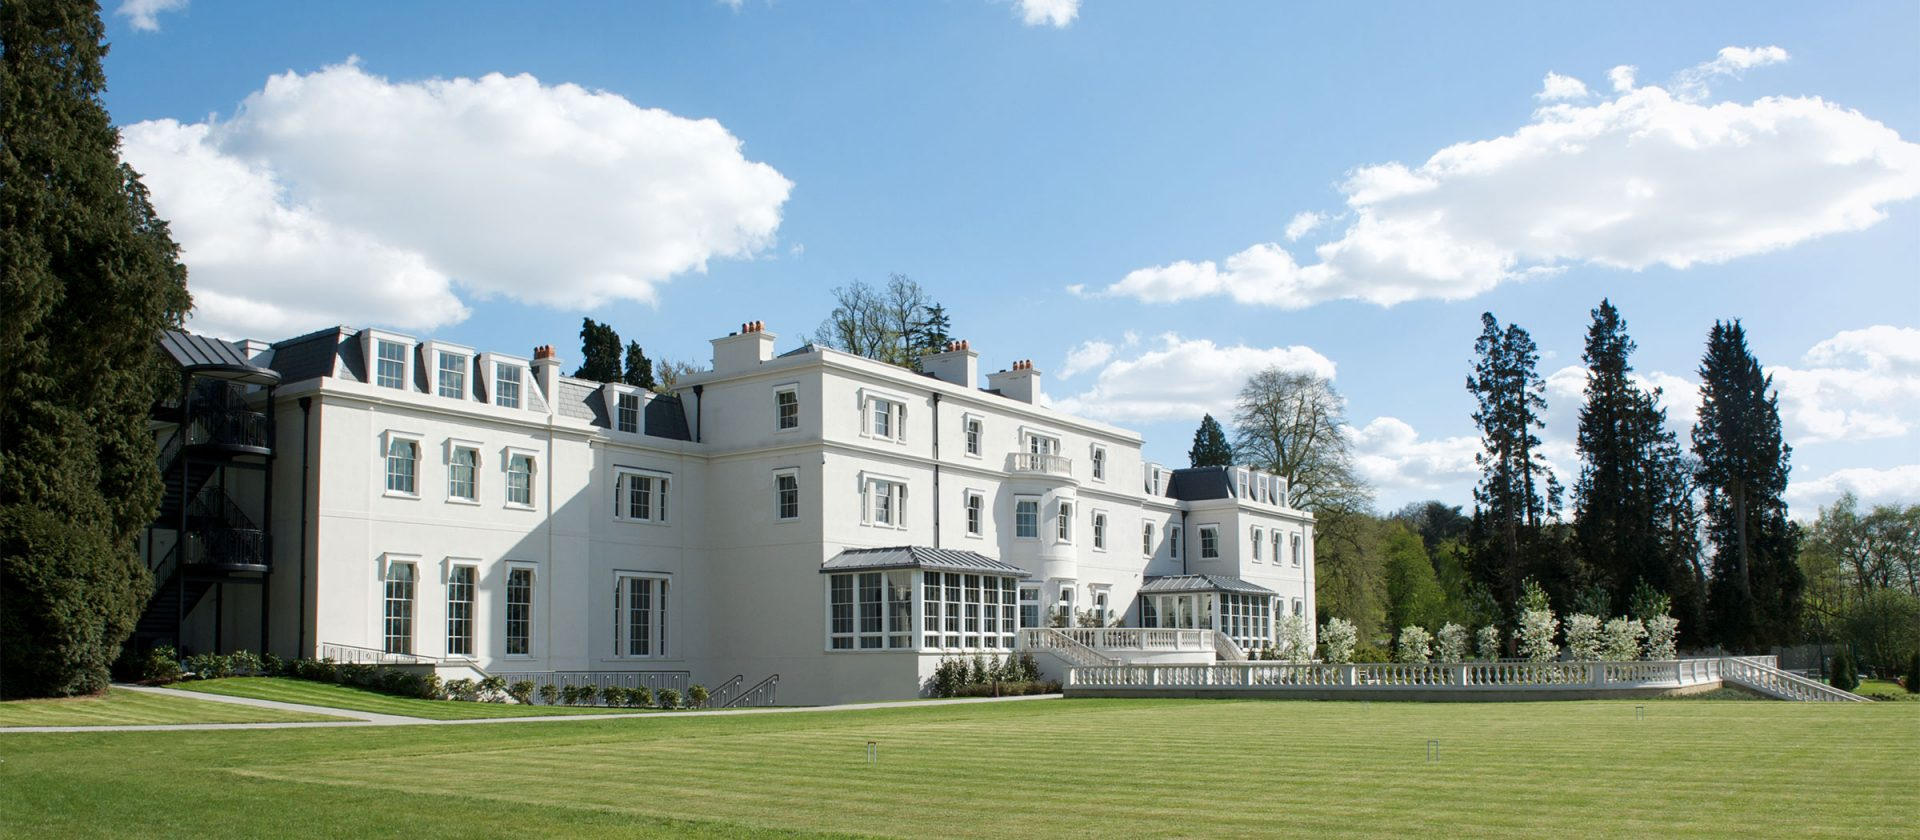 Coworth Park Exterior View and Croquet Lawn